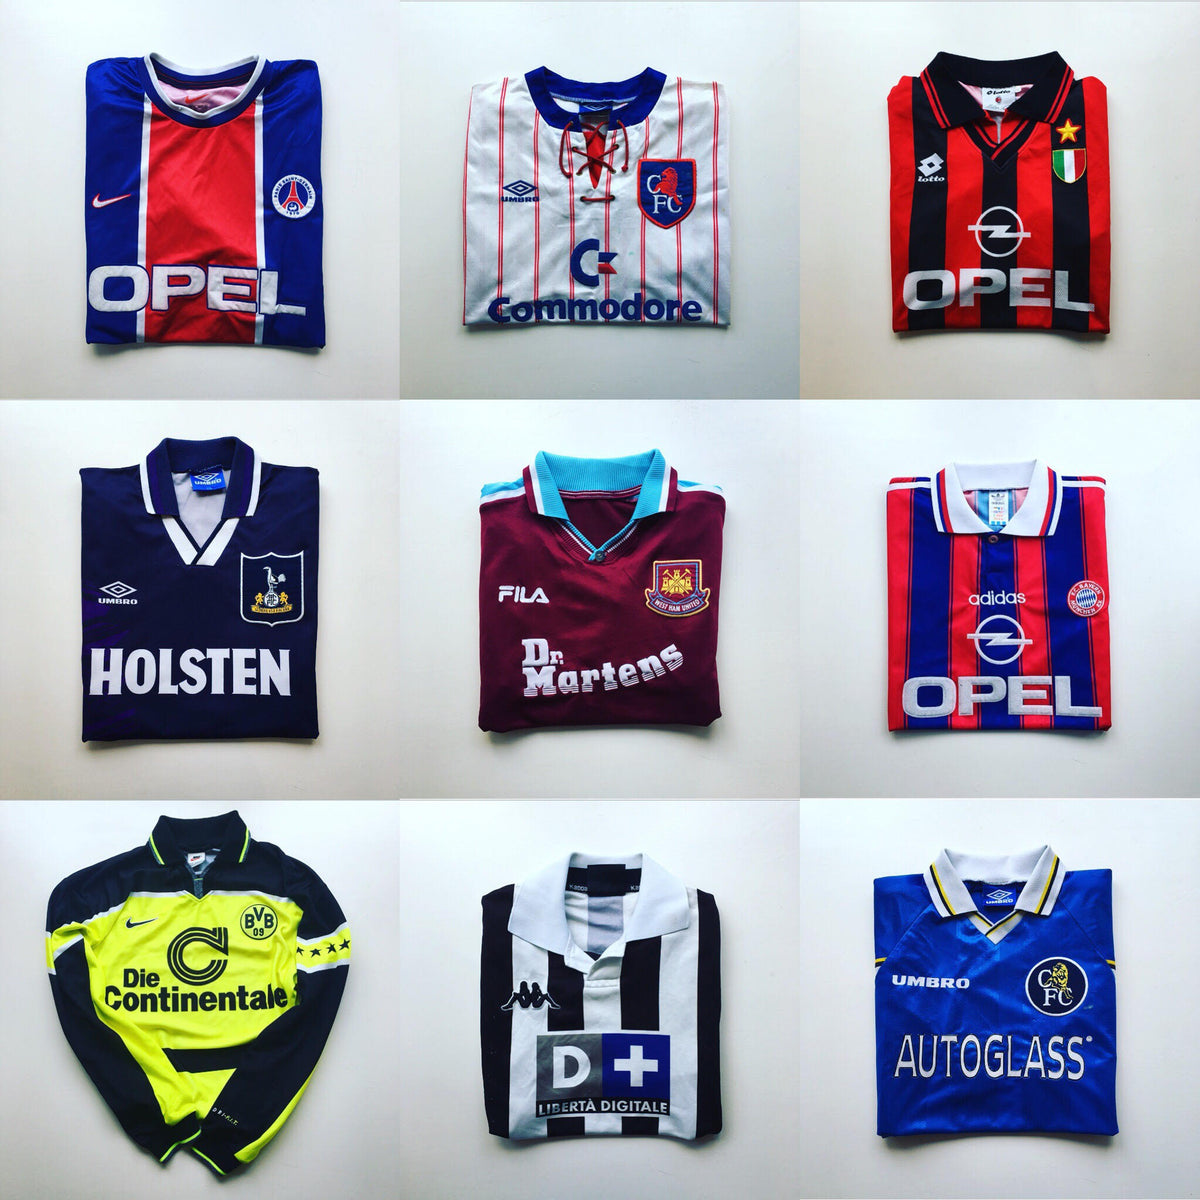 95f6fb97506 Original, authentic, vintage football shirts from the 80's, 90's and the  present day.